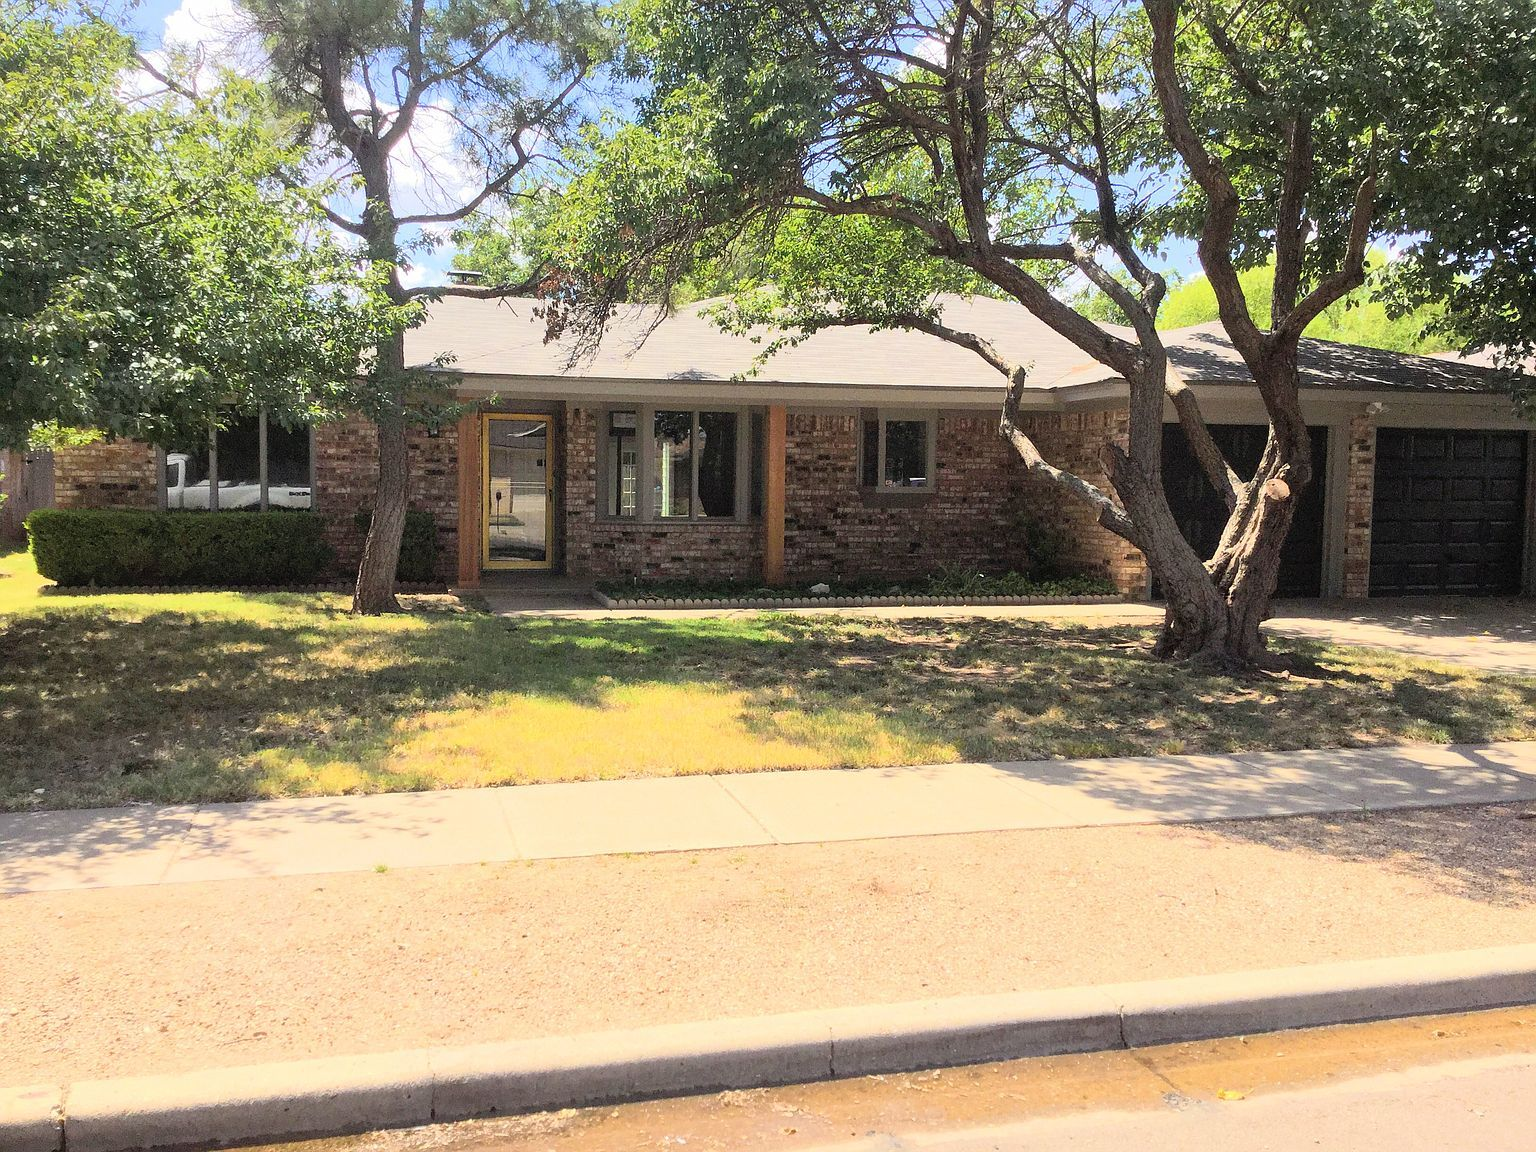 Zillow Has 530 Homes For Sale In Lubbock Tx Matching View Listing Photos Review Sales History And Use Our Detailed Real Estate Fi In 2020 Lubbock Zillow Real Estate